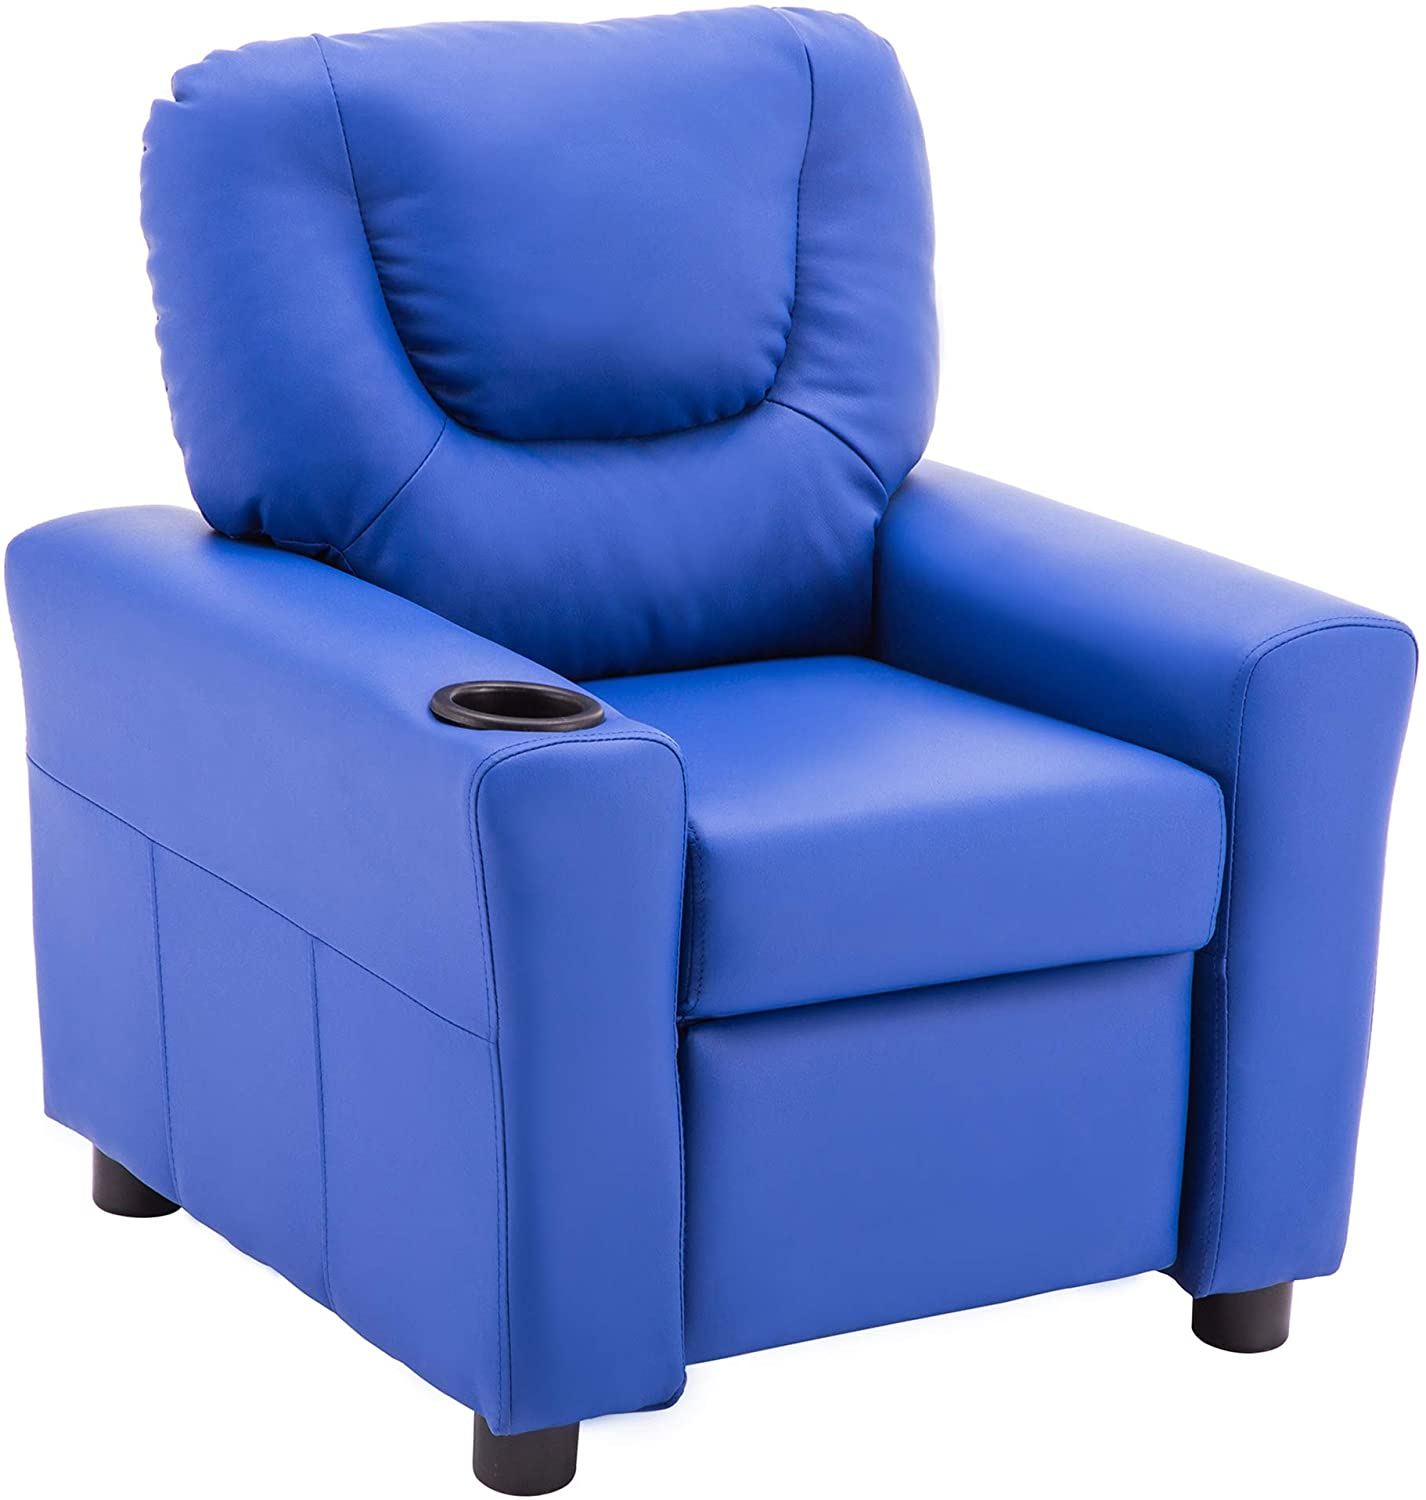 mcombo kids recliner chair armrest sofa couch with cup holder for toddlers boys girls faux leather 7240